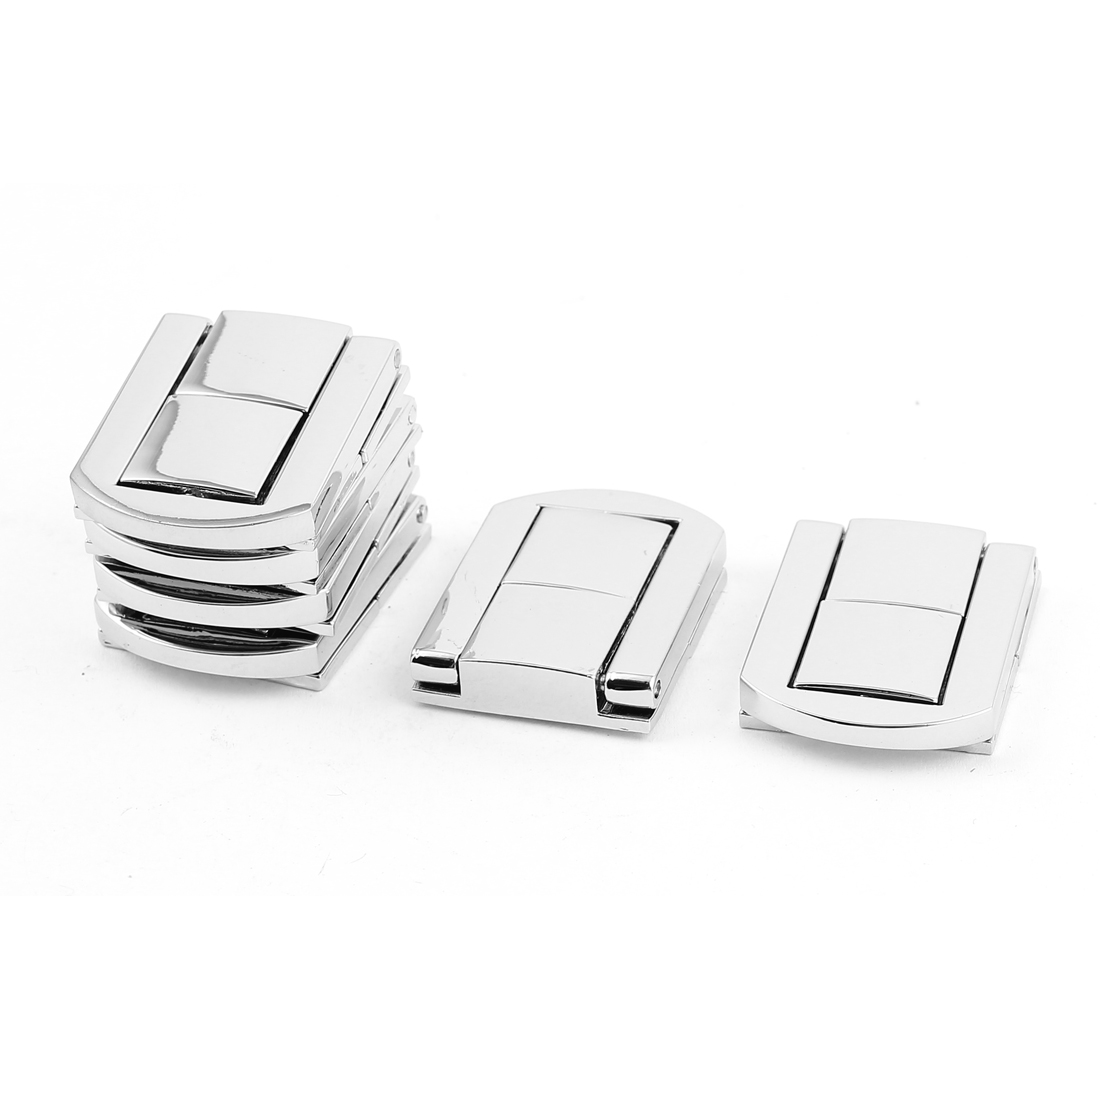 30mm x 25mm Latch Suitcase Box Drawbolt Closure Silver Tone 6PCS